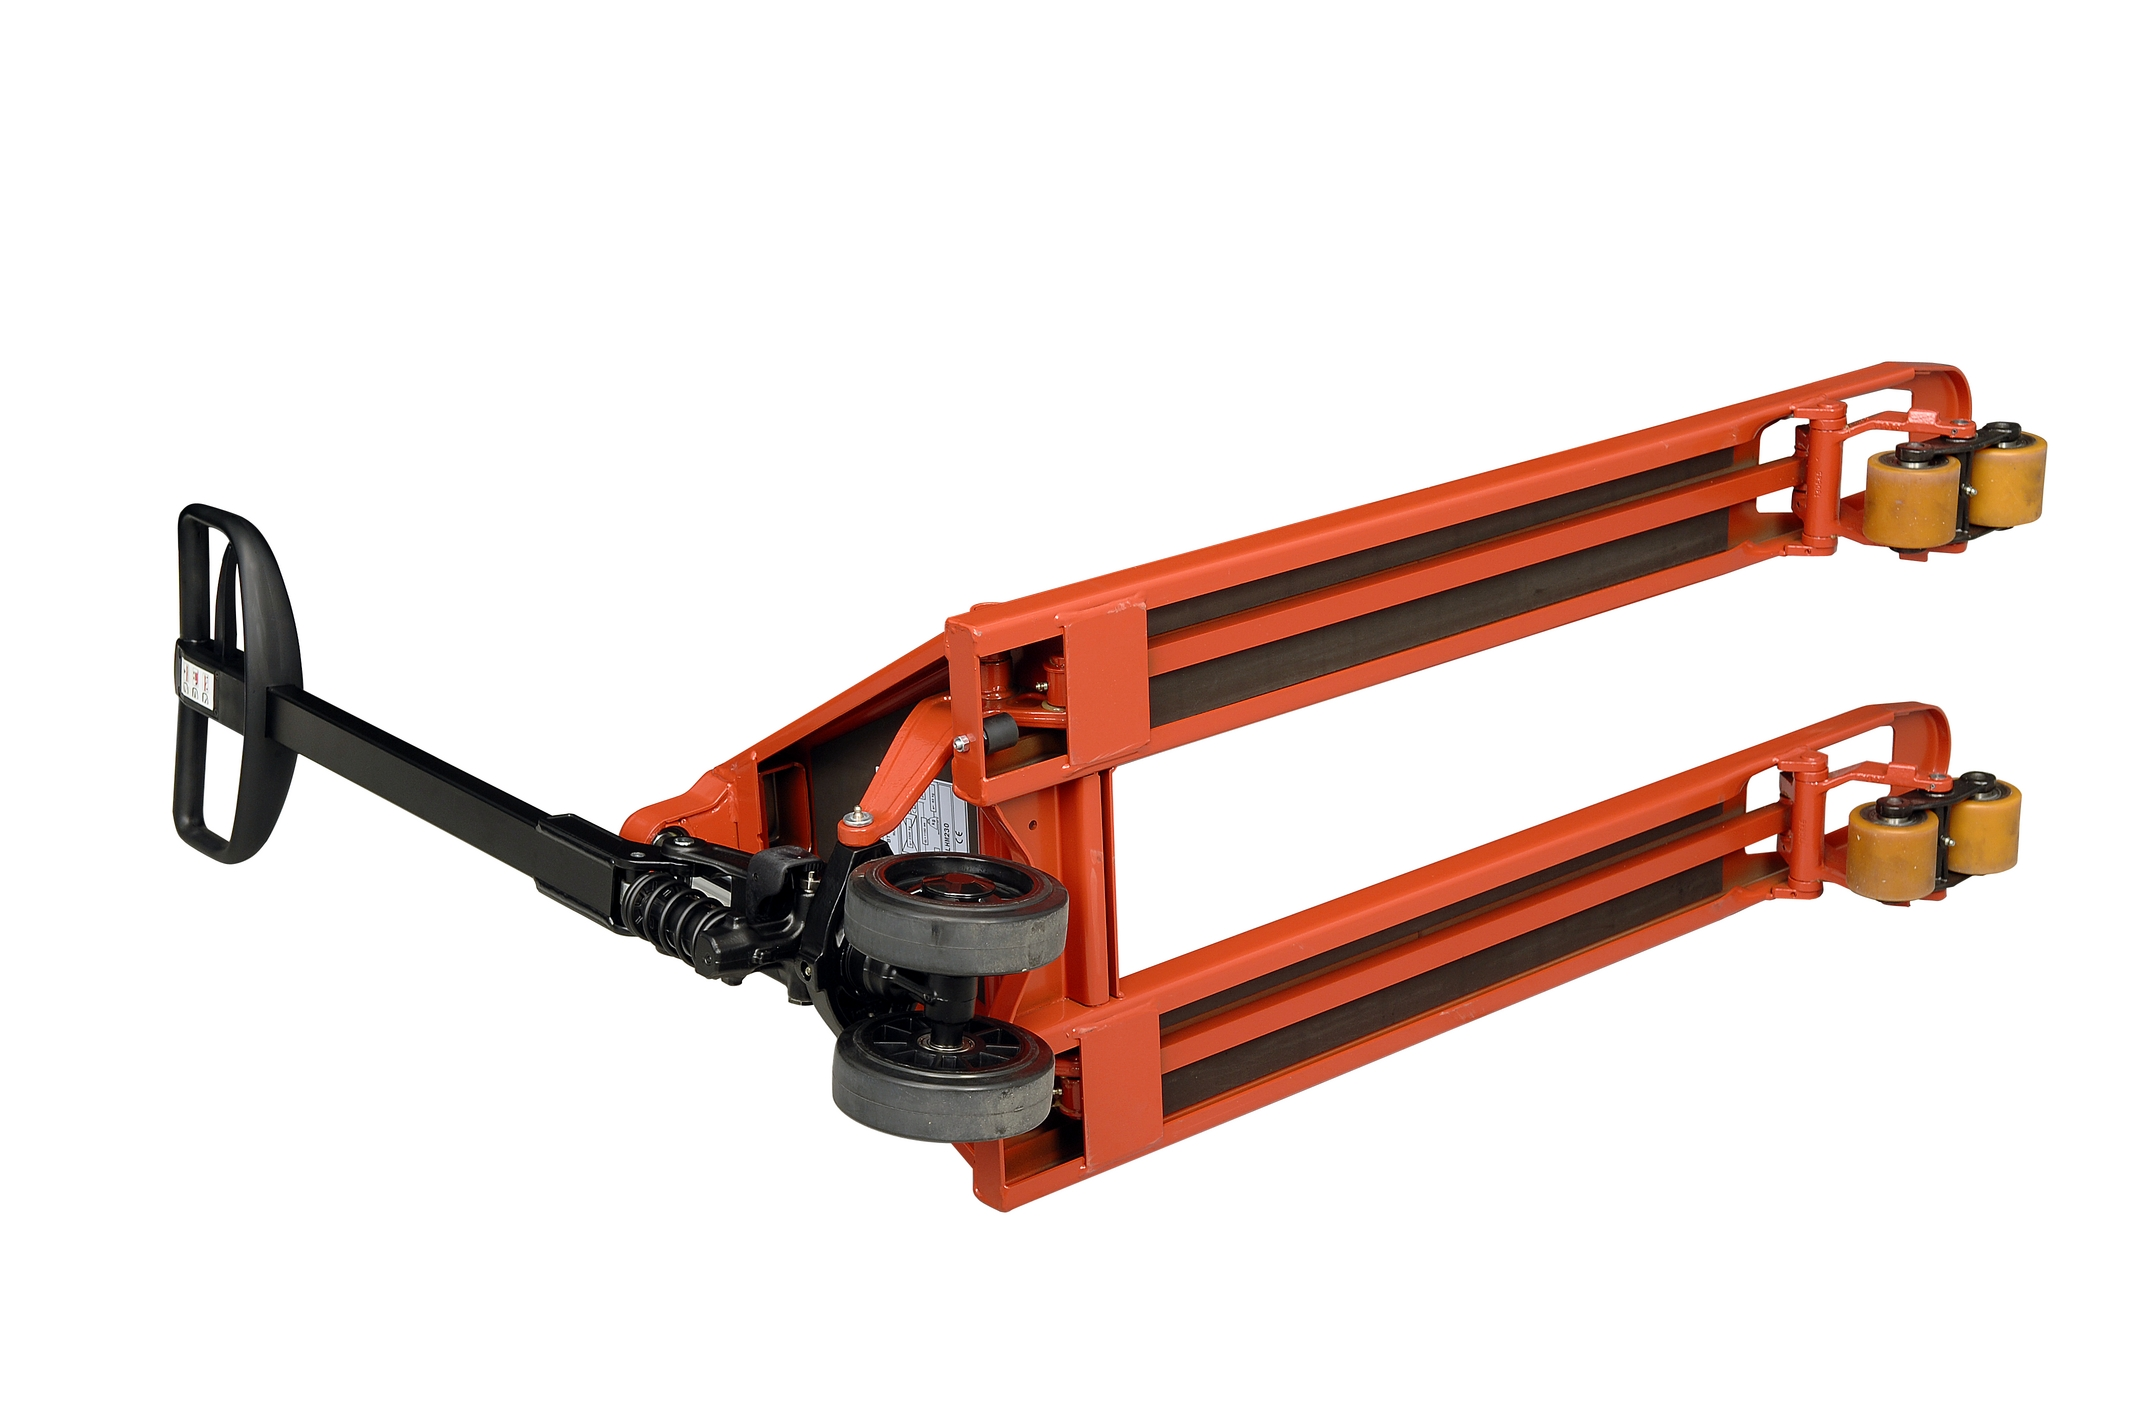 Toyota Lifter LHM300